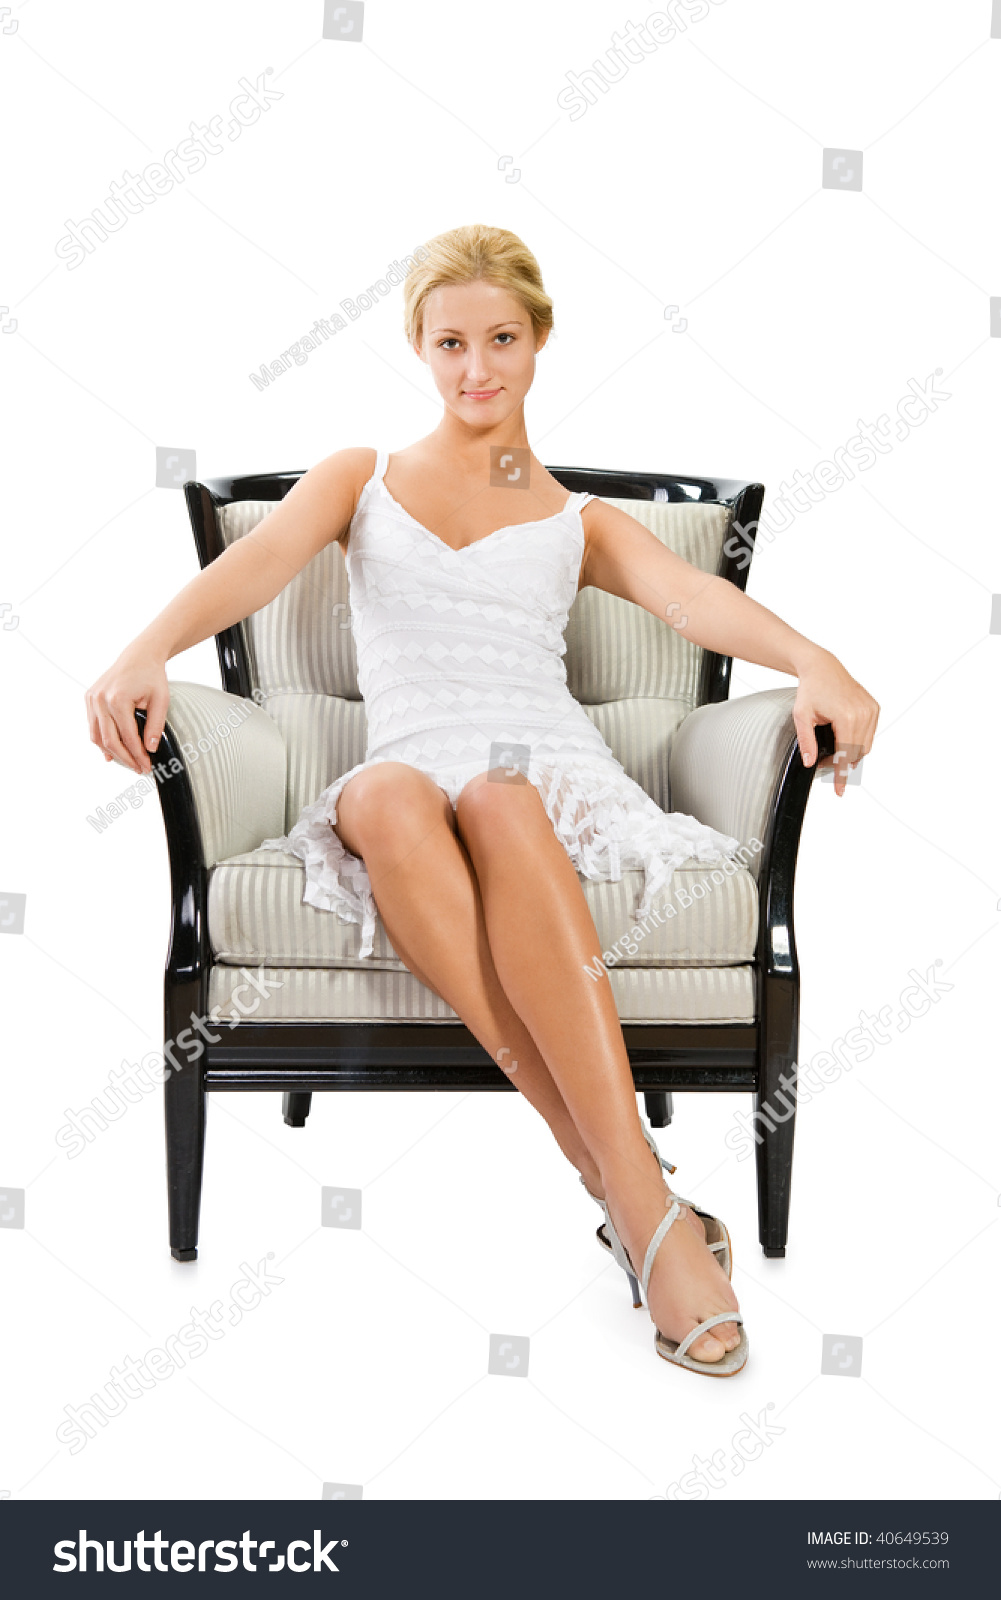 Business woman sitting on a woman sitting